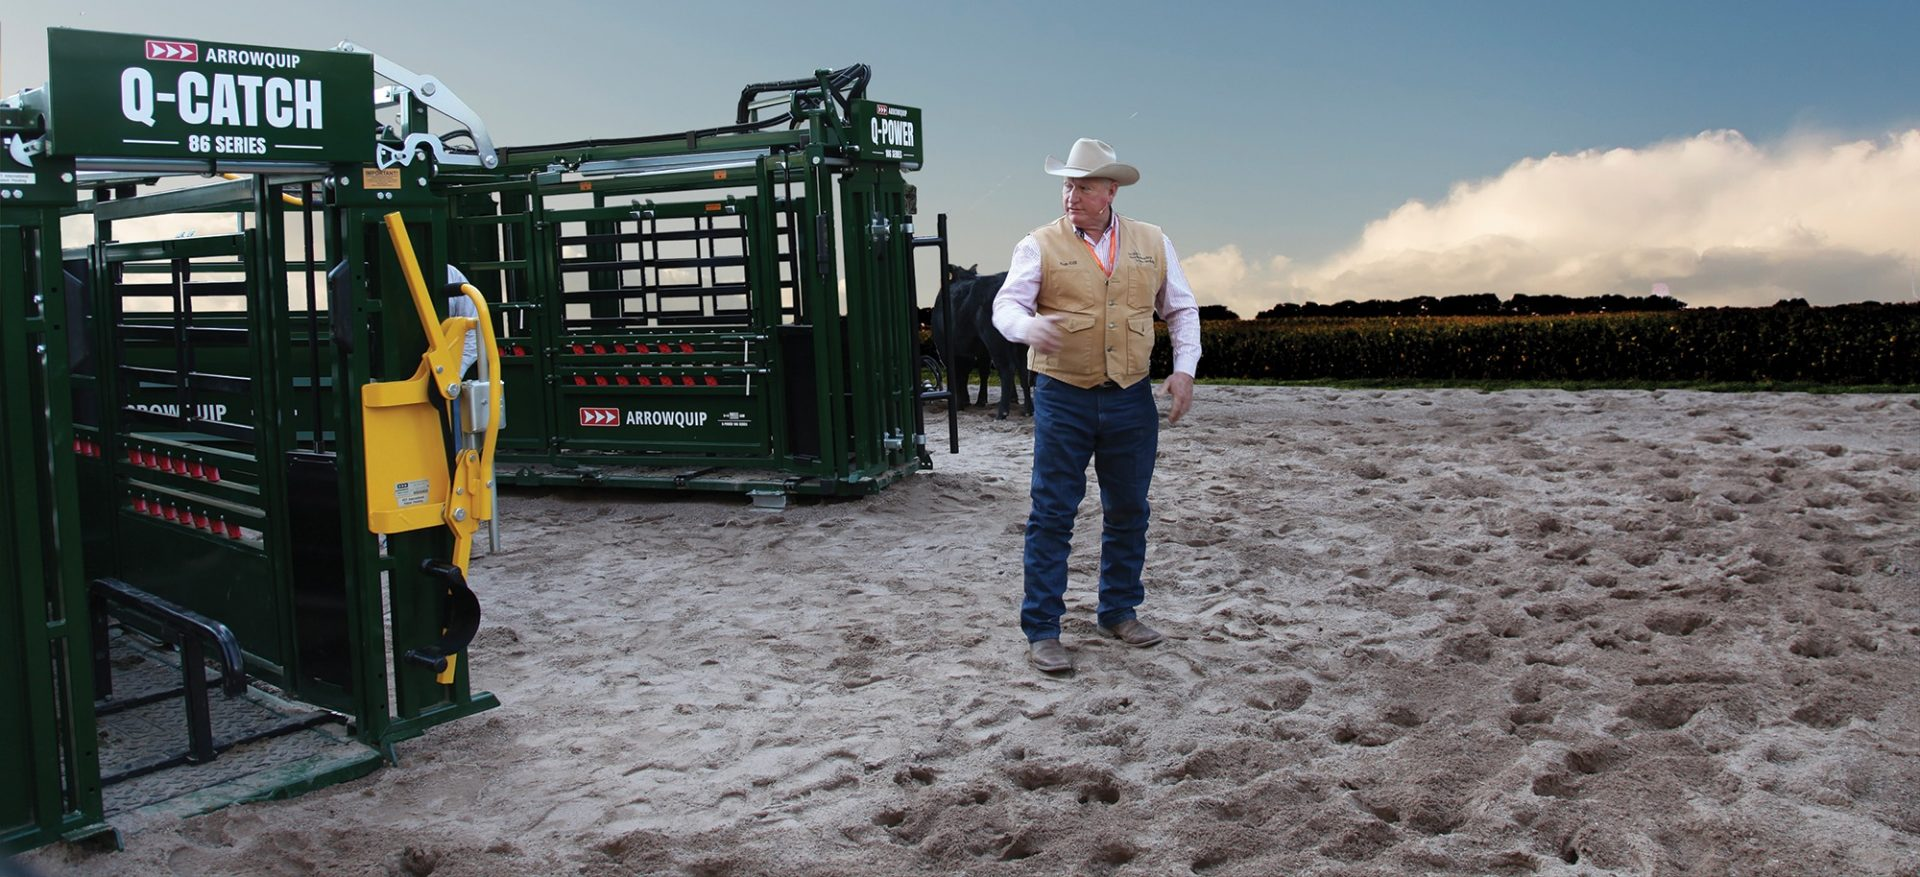 Dr Ron Gill standing next to Q-Catch 86 Series Cattle Chute and Q-Power 106 Series Hydraulic Chute at the NCBA